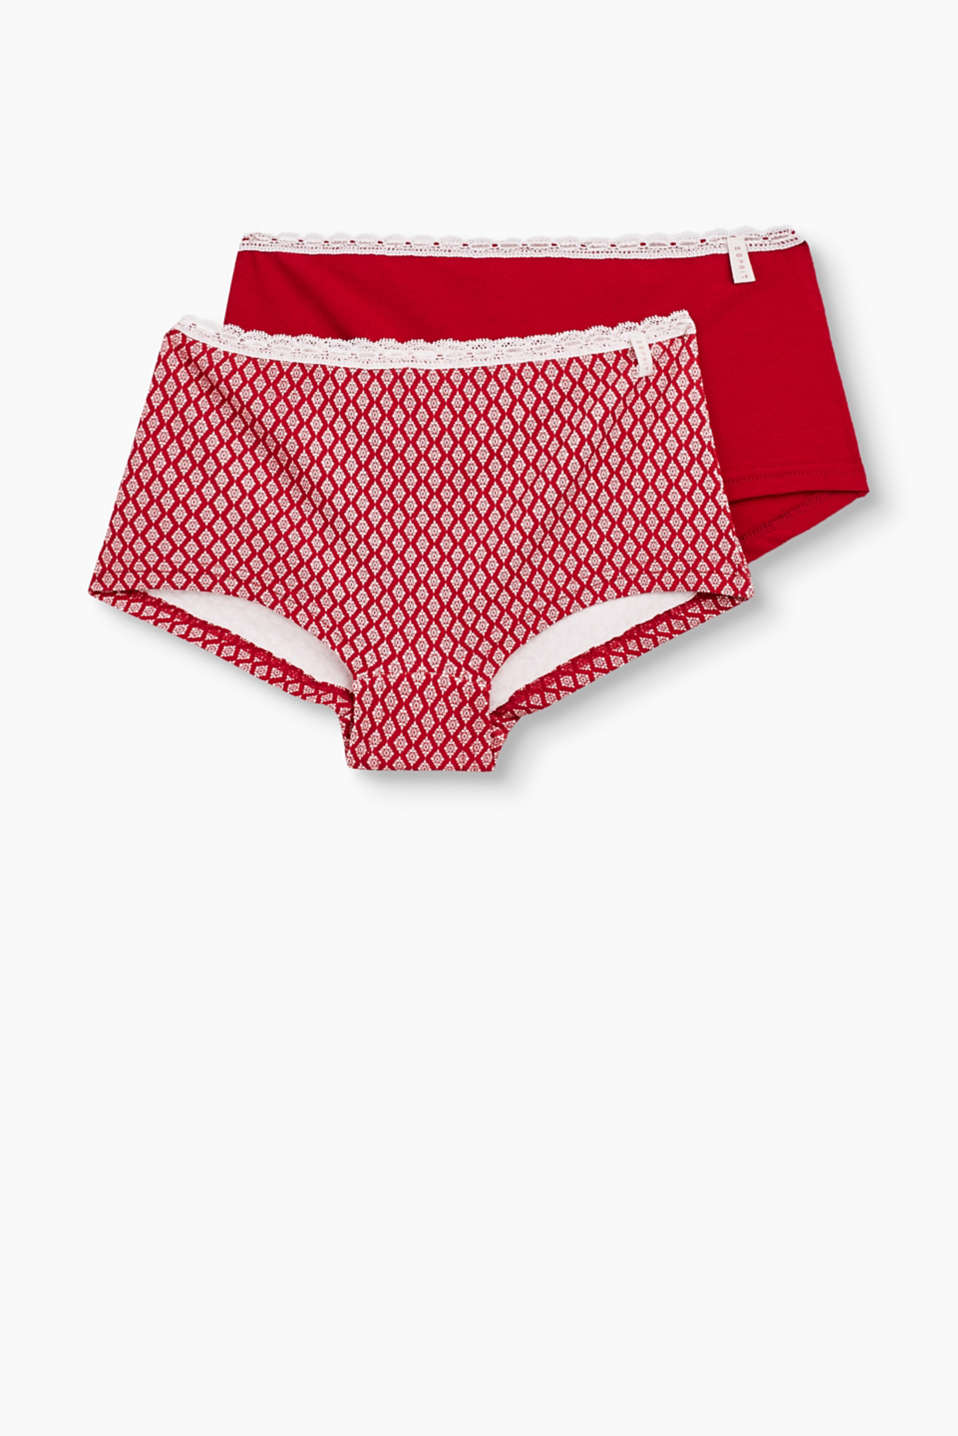 Two pairs of shorts in a romantic retro style: comfortable, with pretty lace trims, patterned and plain